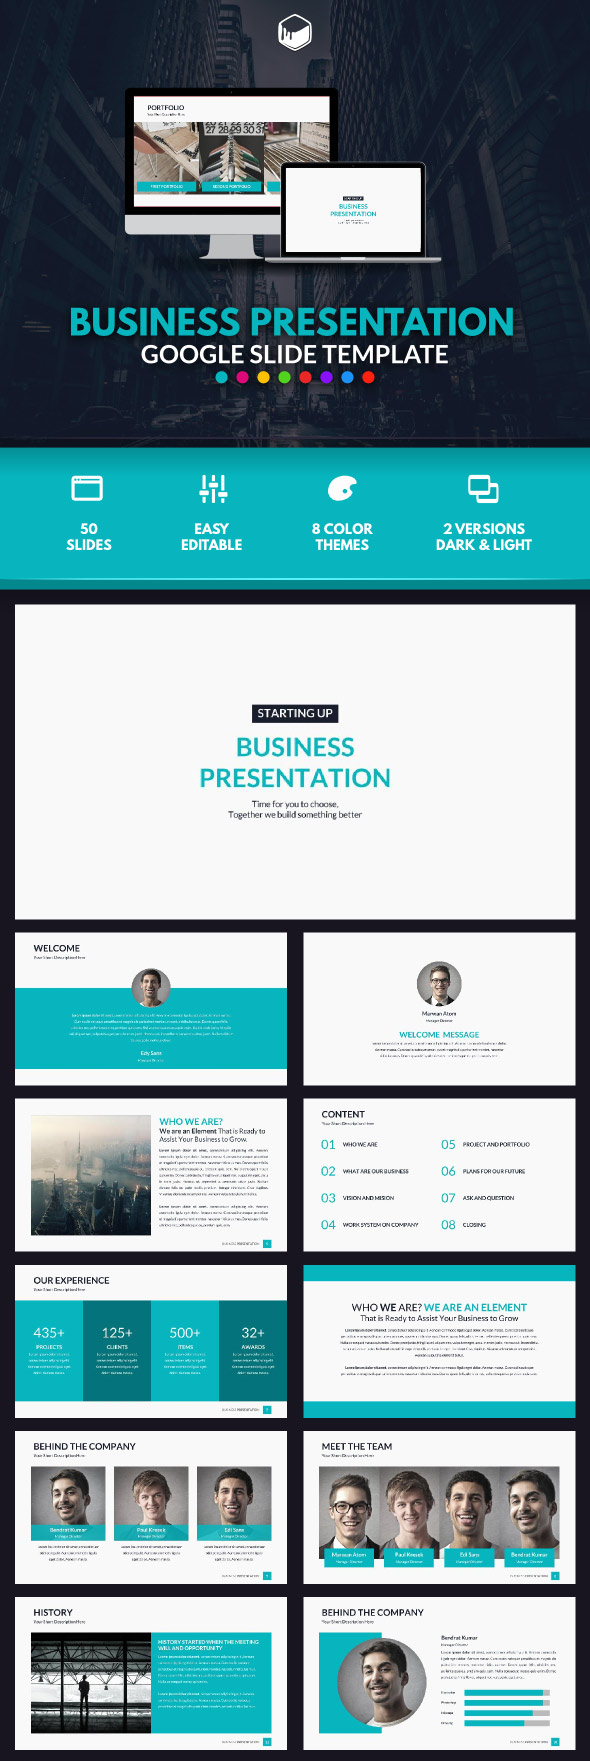 Business Presentation - Google Slide Template